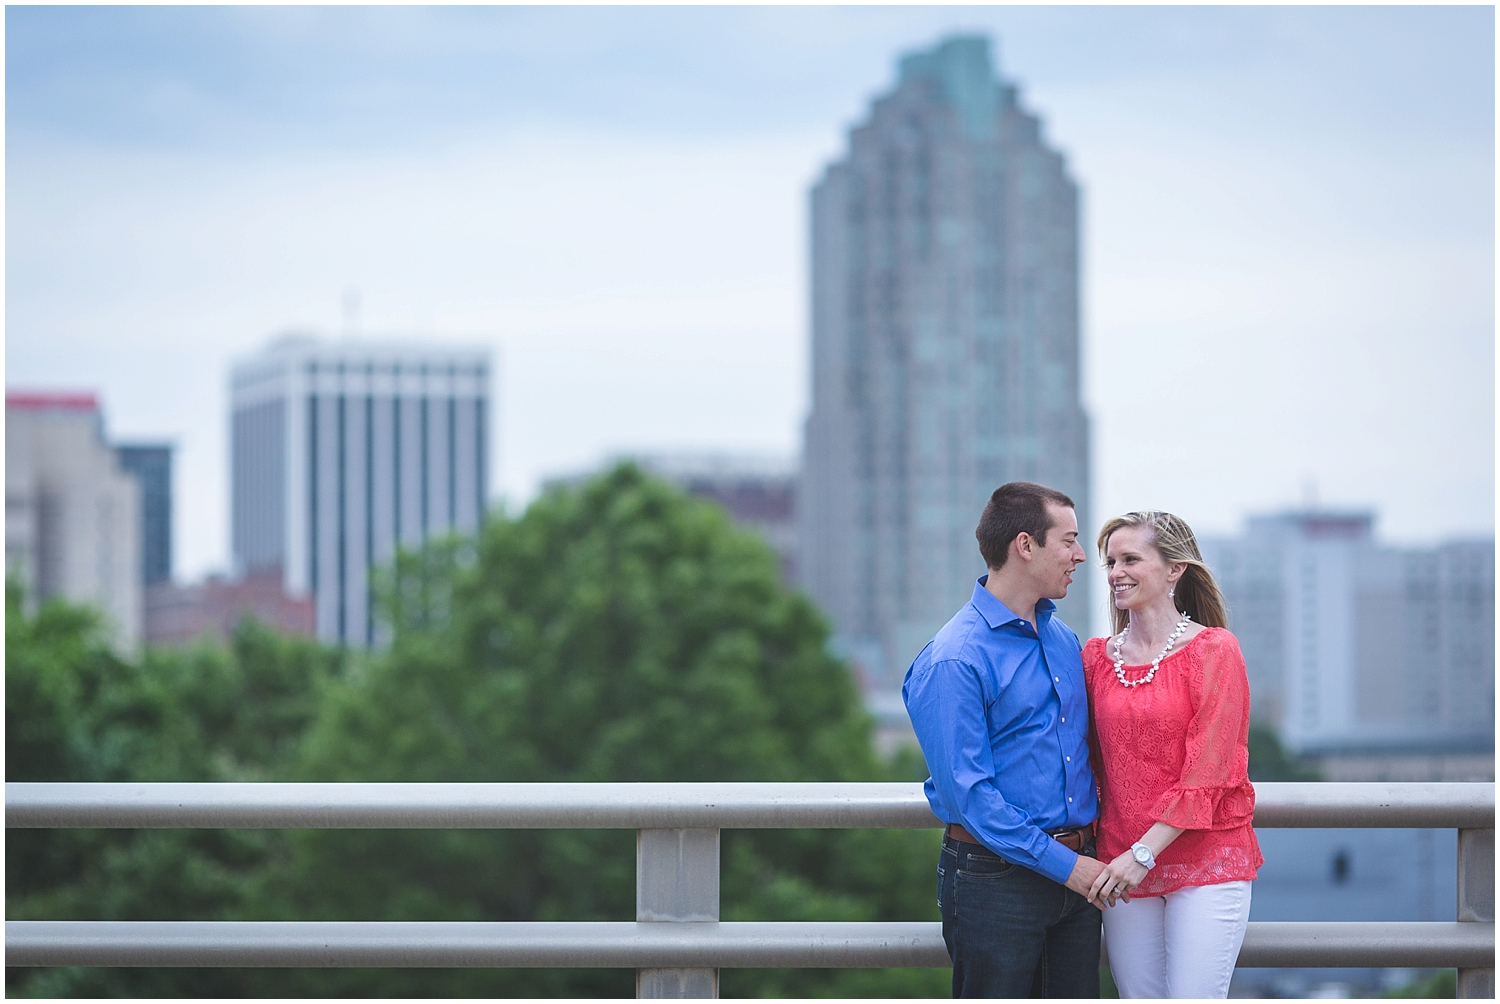 Coker Arboretum UNC Campus Chapel Hill North Carolina Engagement Photographer-0029.jpg